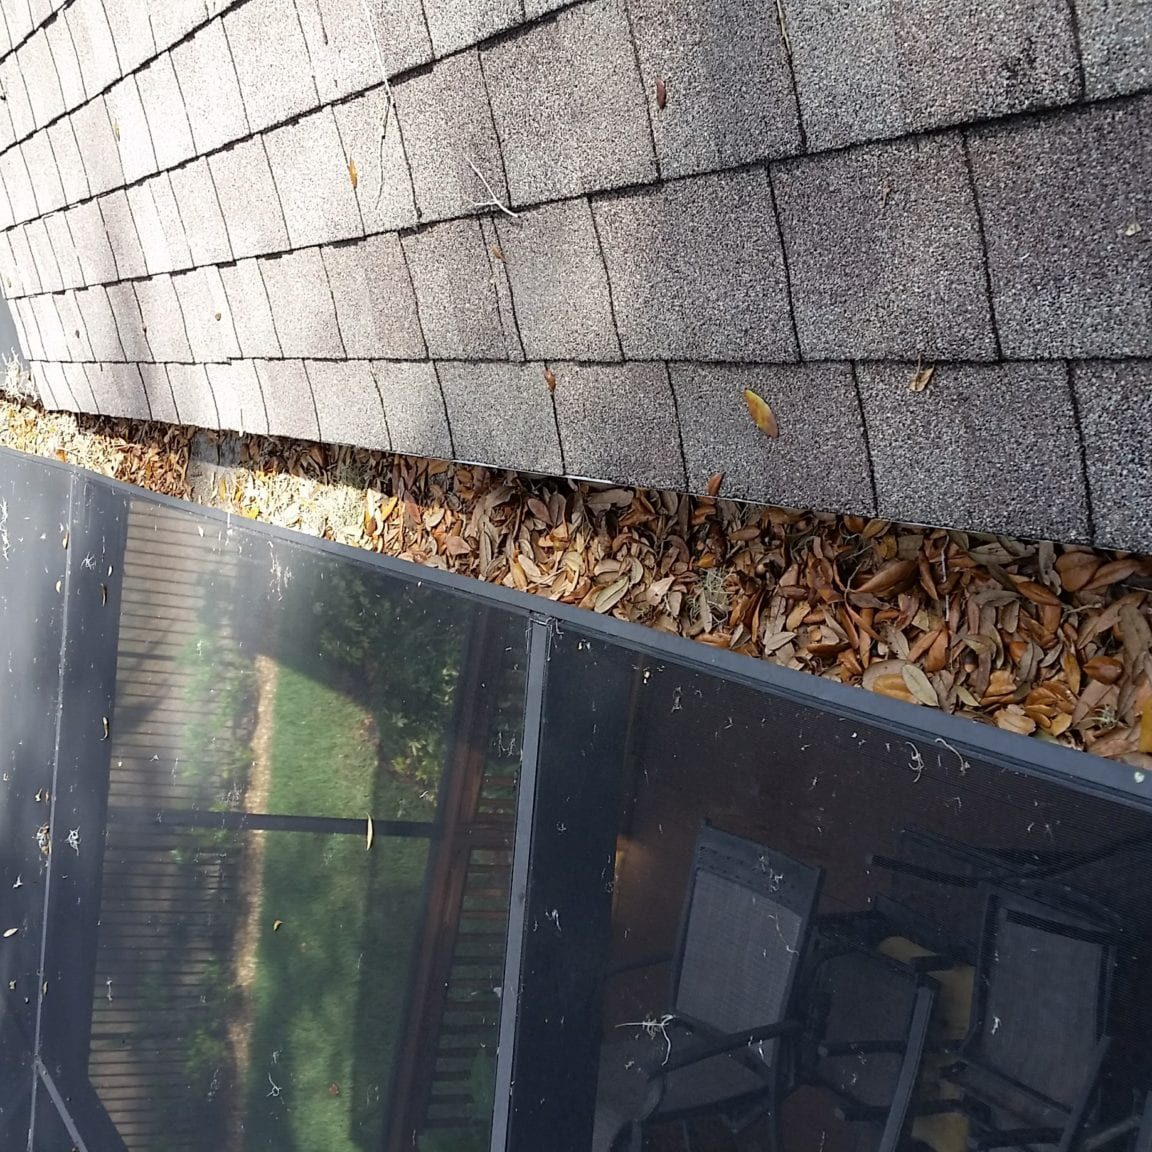 As we move from fall into the colder seasons, it's time to think about home maintenance projects. That includes maintaining and cleaning gutters. When gutters are clean, they prevent rainwater from collecting at the home's foundation, on the roof, and the side of the house. If they're clogged with debris or leaves, water can't run through them. That could lead to costly problems including the following. Siding And Roof Rot If the water isn't flowing the gutter, it's going to drip down the side of the house. Unfortunately, this will result in the siding and roof becoming rotten. Pest Control Issues Standing water attracts pests, including mosquitoes and flies. Other issues include your family becoming exposed to illnesses like West Nile. Standing water is the result of debris piling up in gutters. How To Avoid These Issues Hiring Lightning Gutter Cleaning is the best way to help avoid and eliminate these issues. Our team of professionals will arrive to clean and maintain your gutters in preparation for the winter months. You'll receive: Professional, uniformed service technicians who come on-time based on your schedule. All lawn furniture and other items are placed out of the way. Your gutters will have all dirt, leaves, sludge, and sticks removed from them. All downspouts will be tested to ensure water flow is reliable and clear. Your exterior gutters will receive a thorough washing to enhance your curb appeal. Before cleanup occurs, a final inspection will happen first. Working with Lightning Gutter Cleaning ensures your home is ready for the cold weather months.